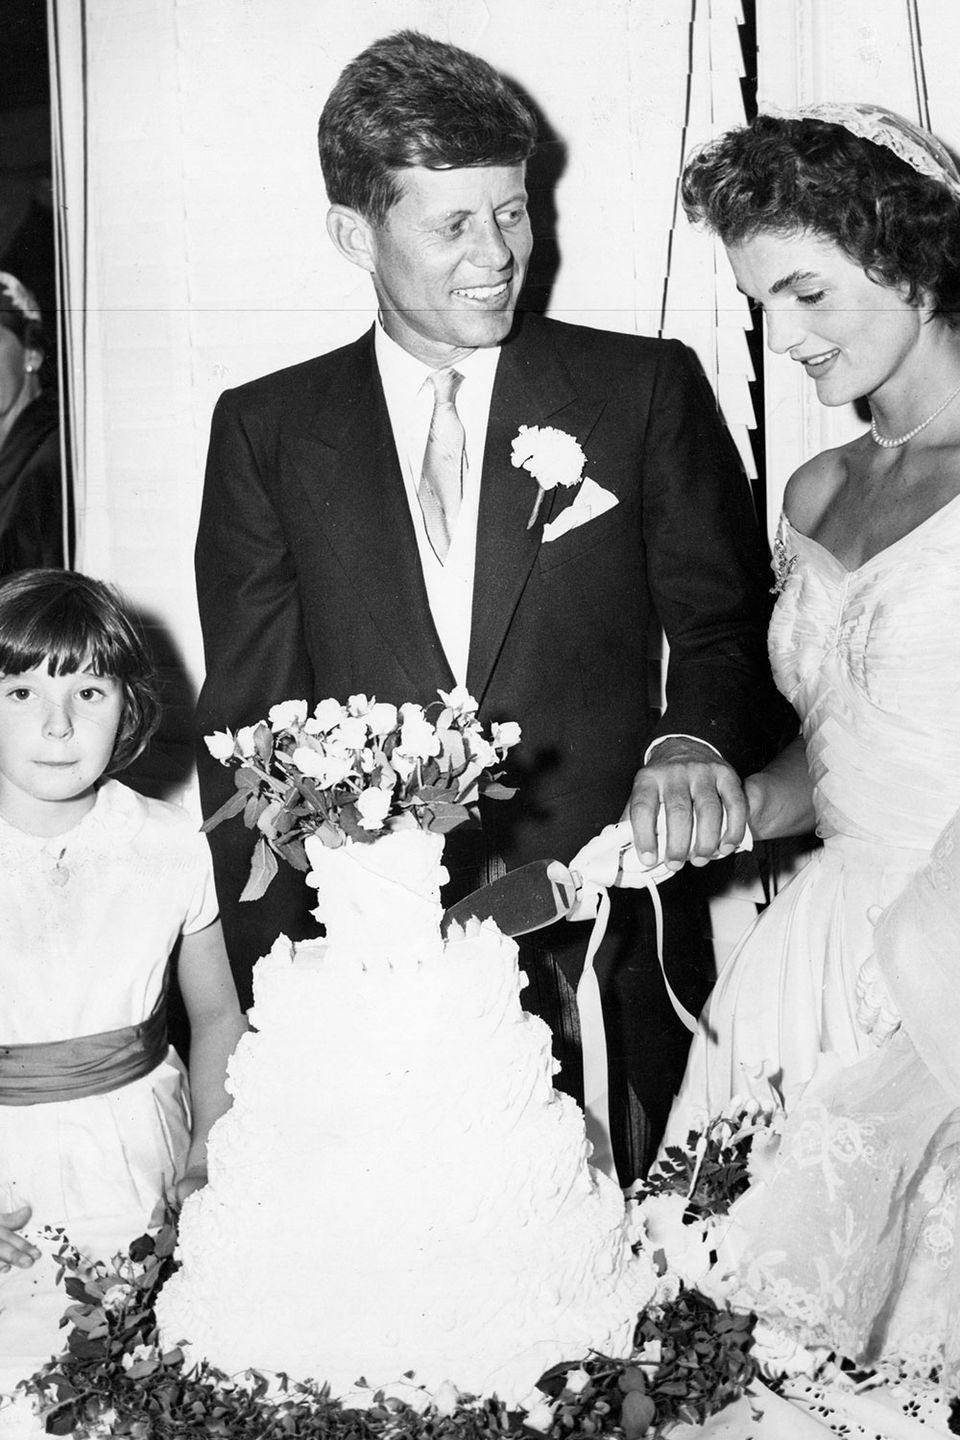 <p>The cake was from Plourdes Bakery in Fall River, Massachusetts. John learned about the bakery while campaigning for Senate in 1952. </p>